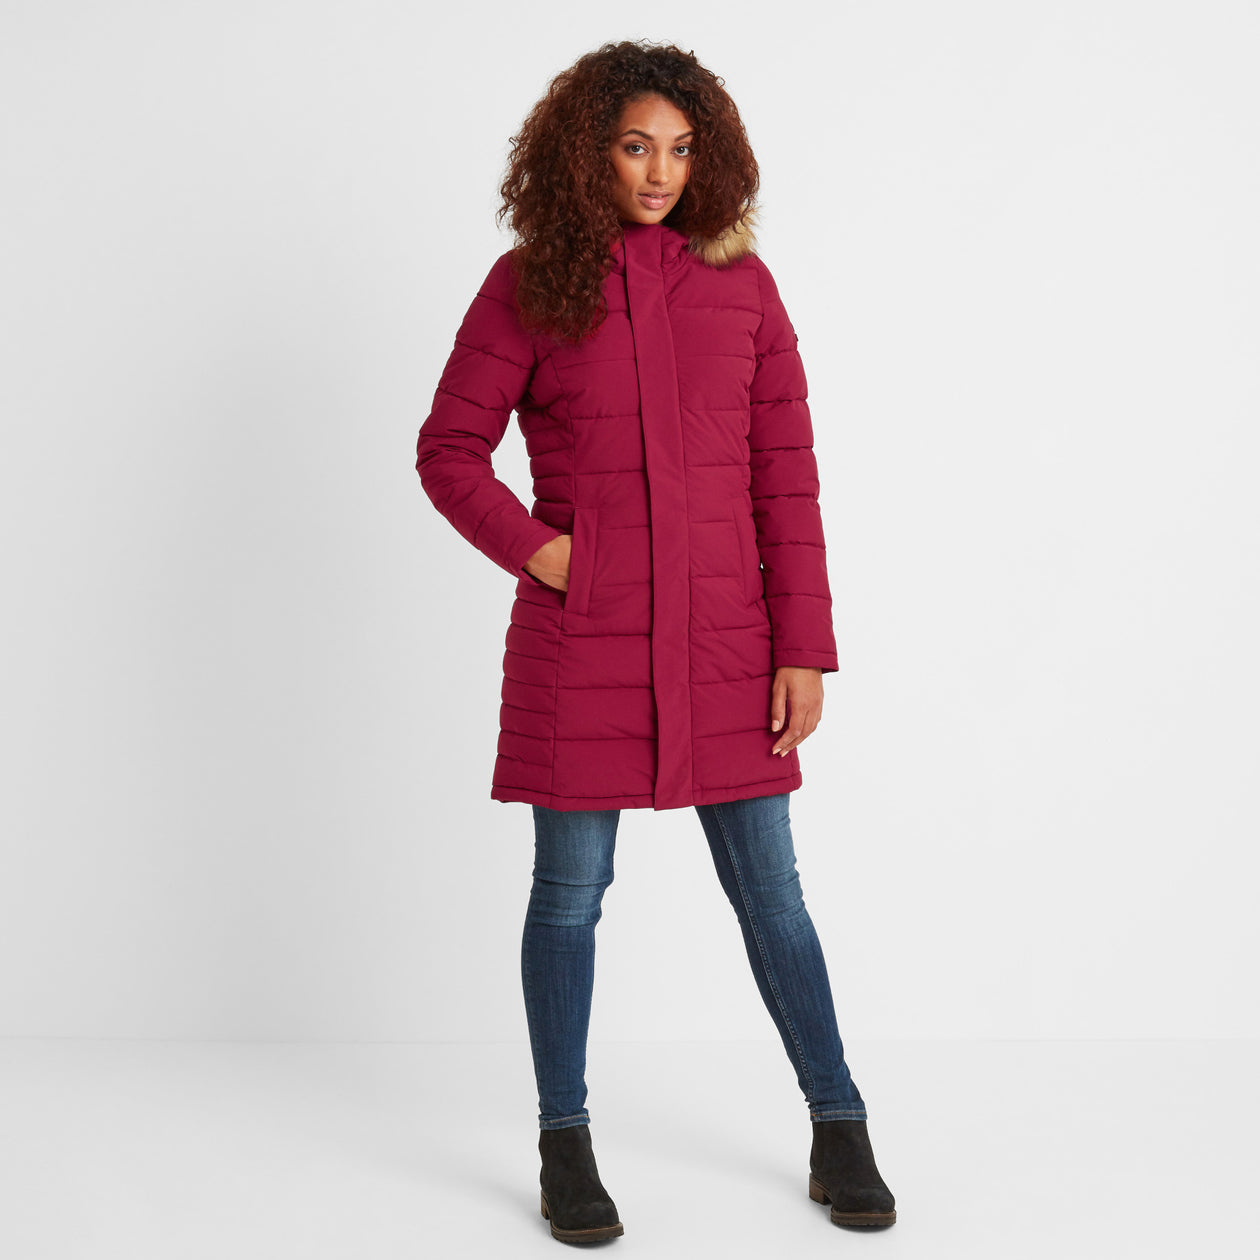 Firbeck Womens Long Insulated Jacket - Raspberry image 4